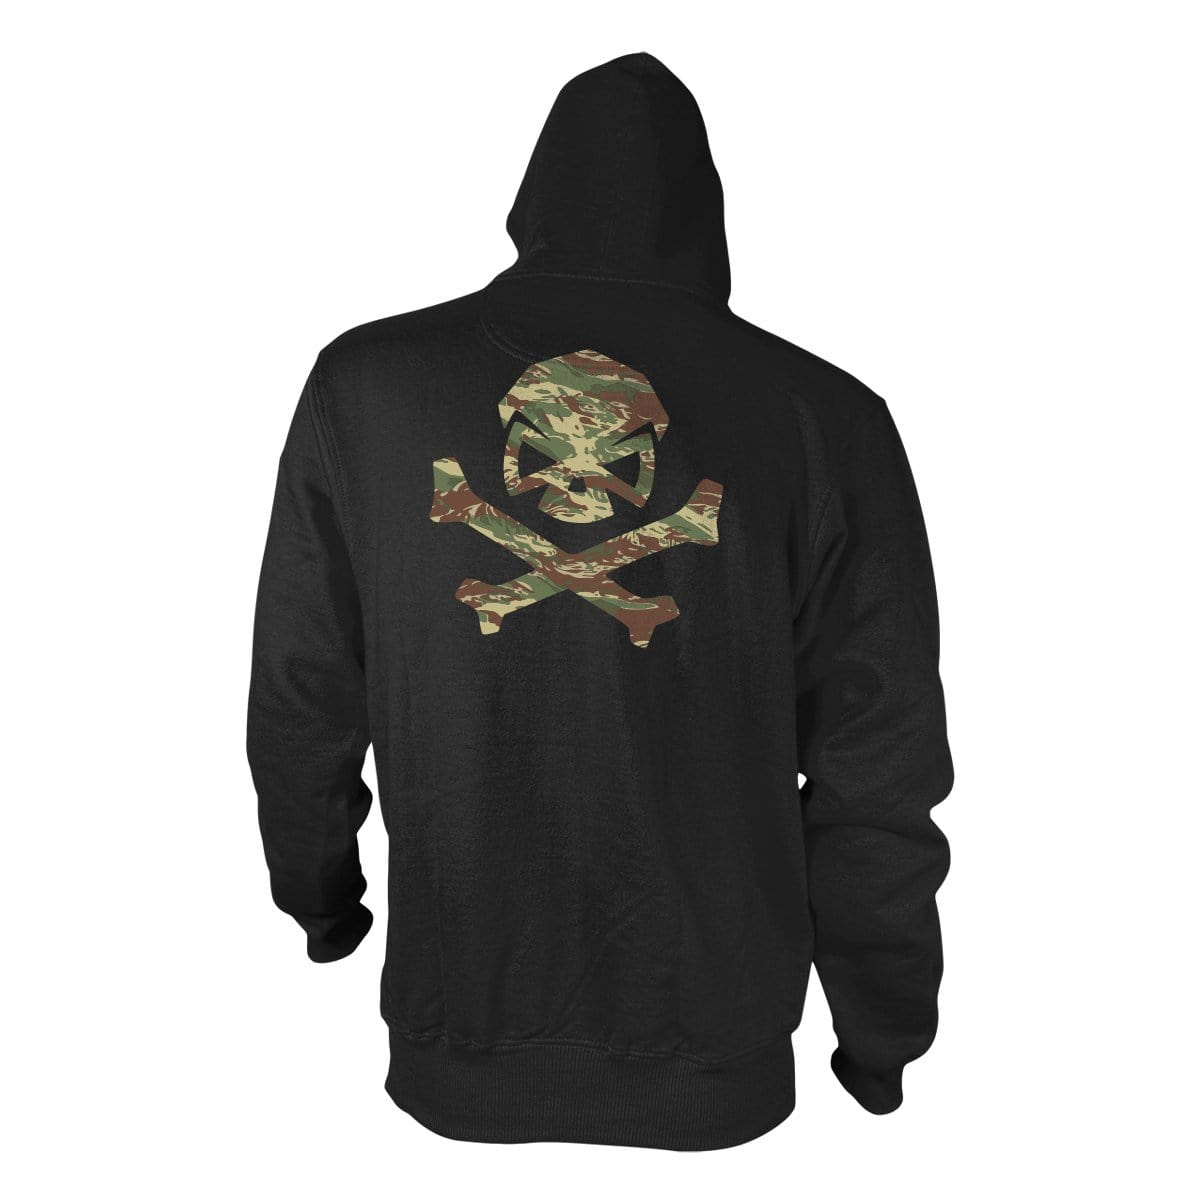 Hitter in the Mist Hoodie - Black/Brushstroke - Hoodies - Pipe Hitters Union